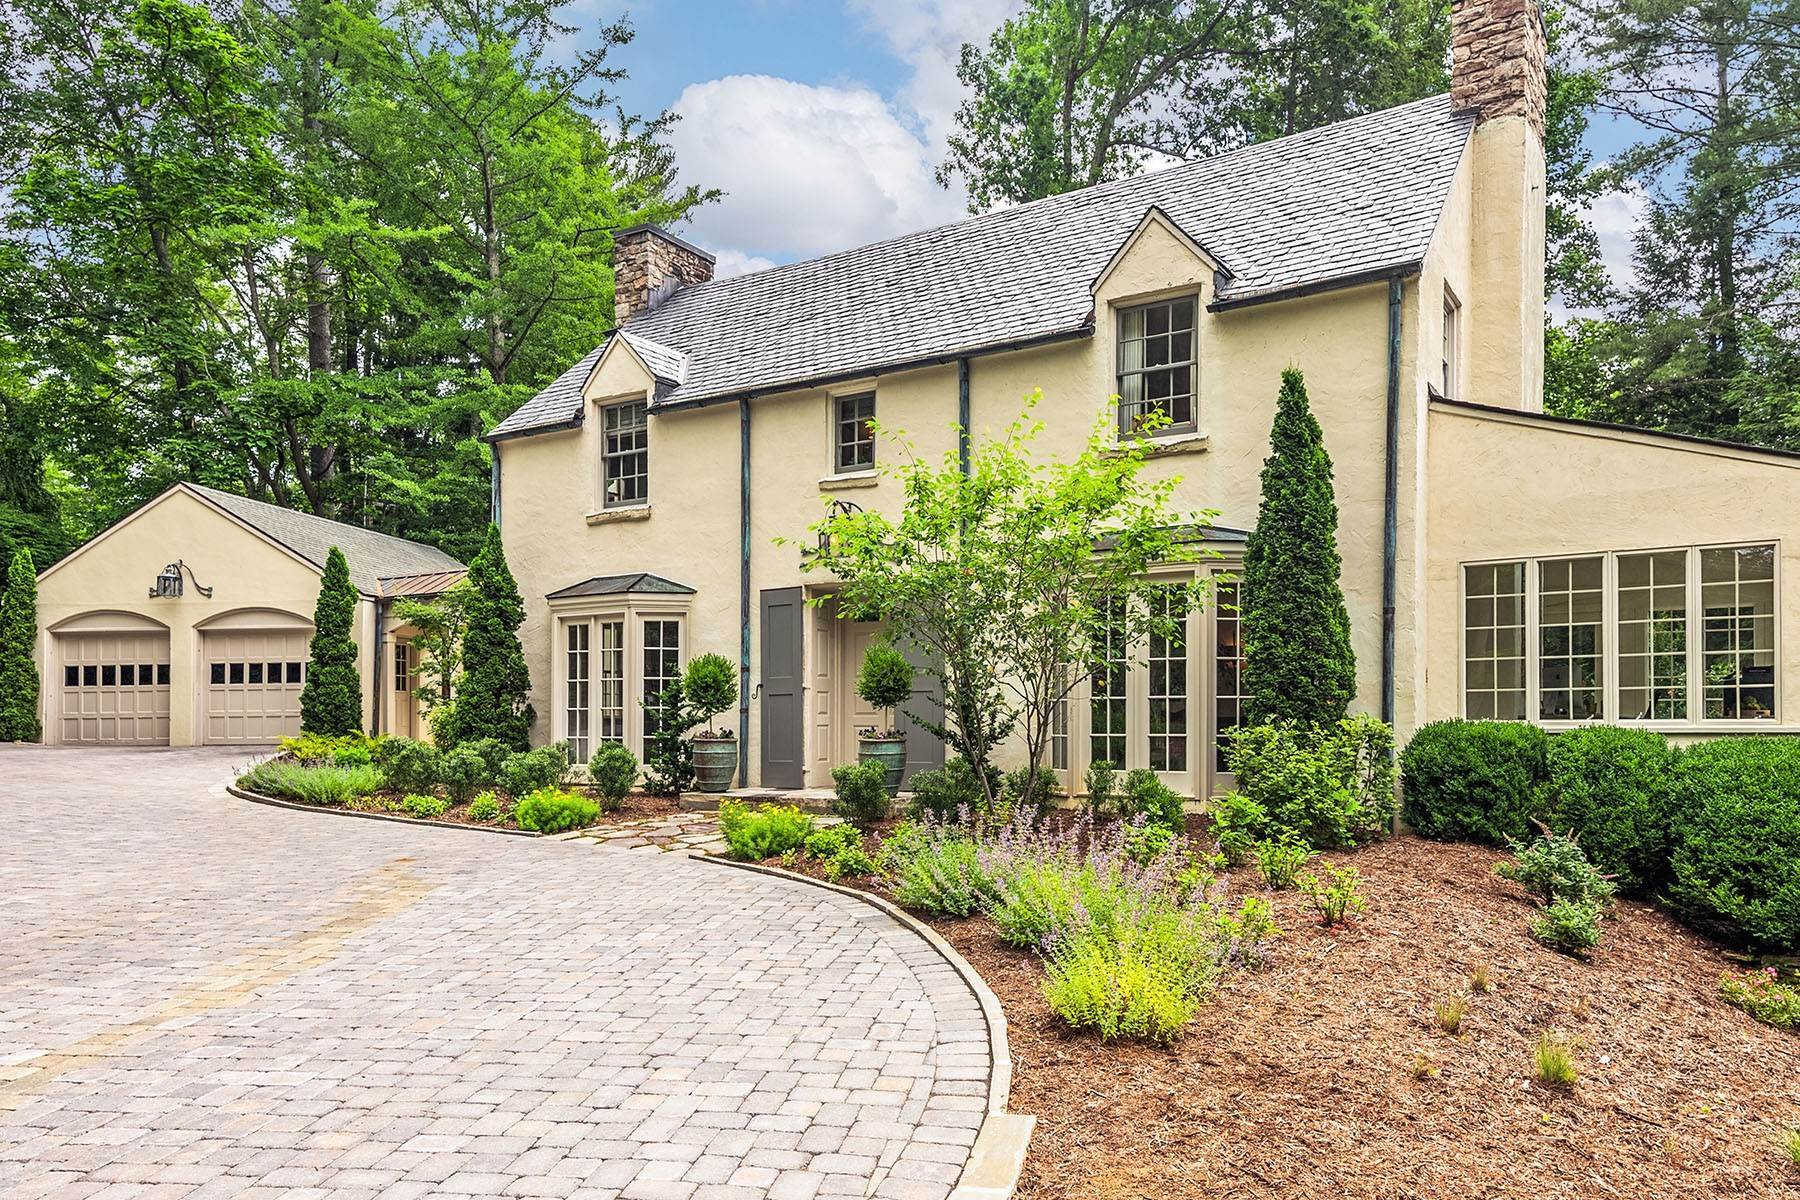 Single Family Homes for Sale at BILTMORE FOREST 10 Greenwood Asheville, North Carolina 28803 United States